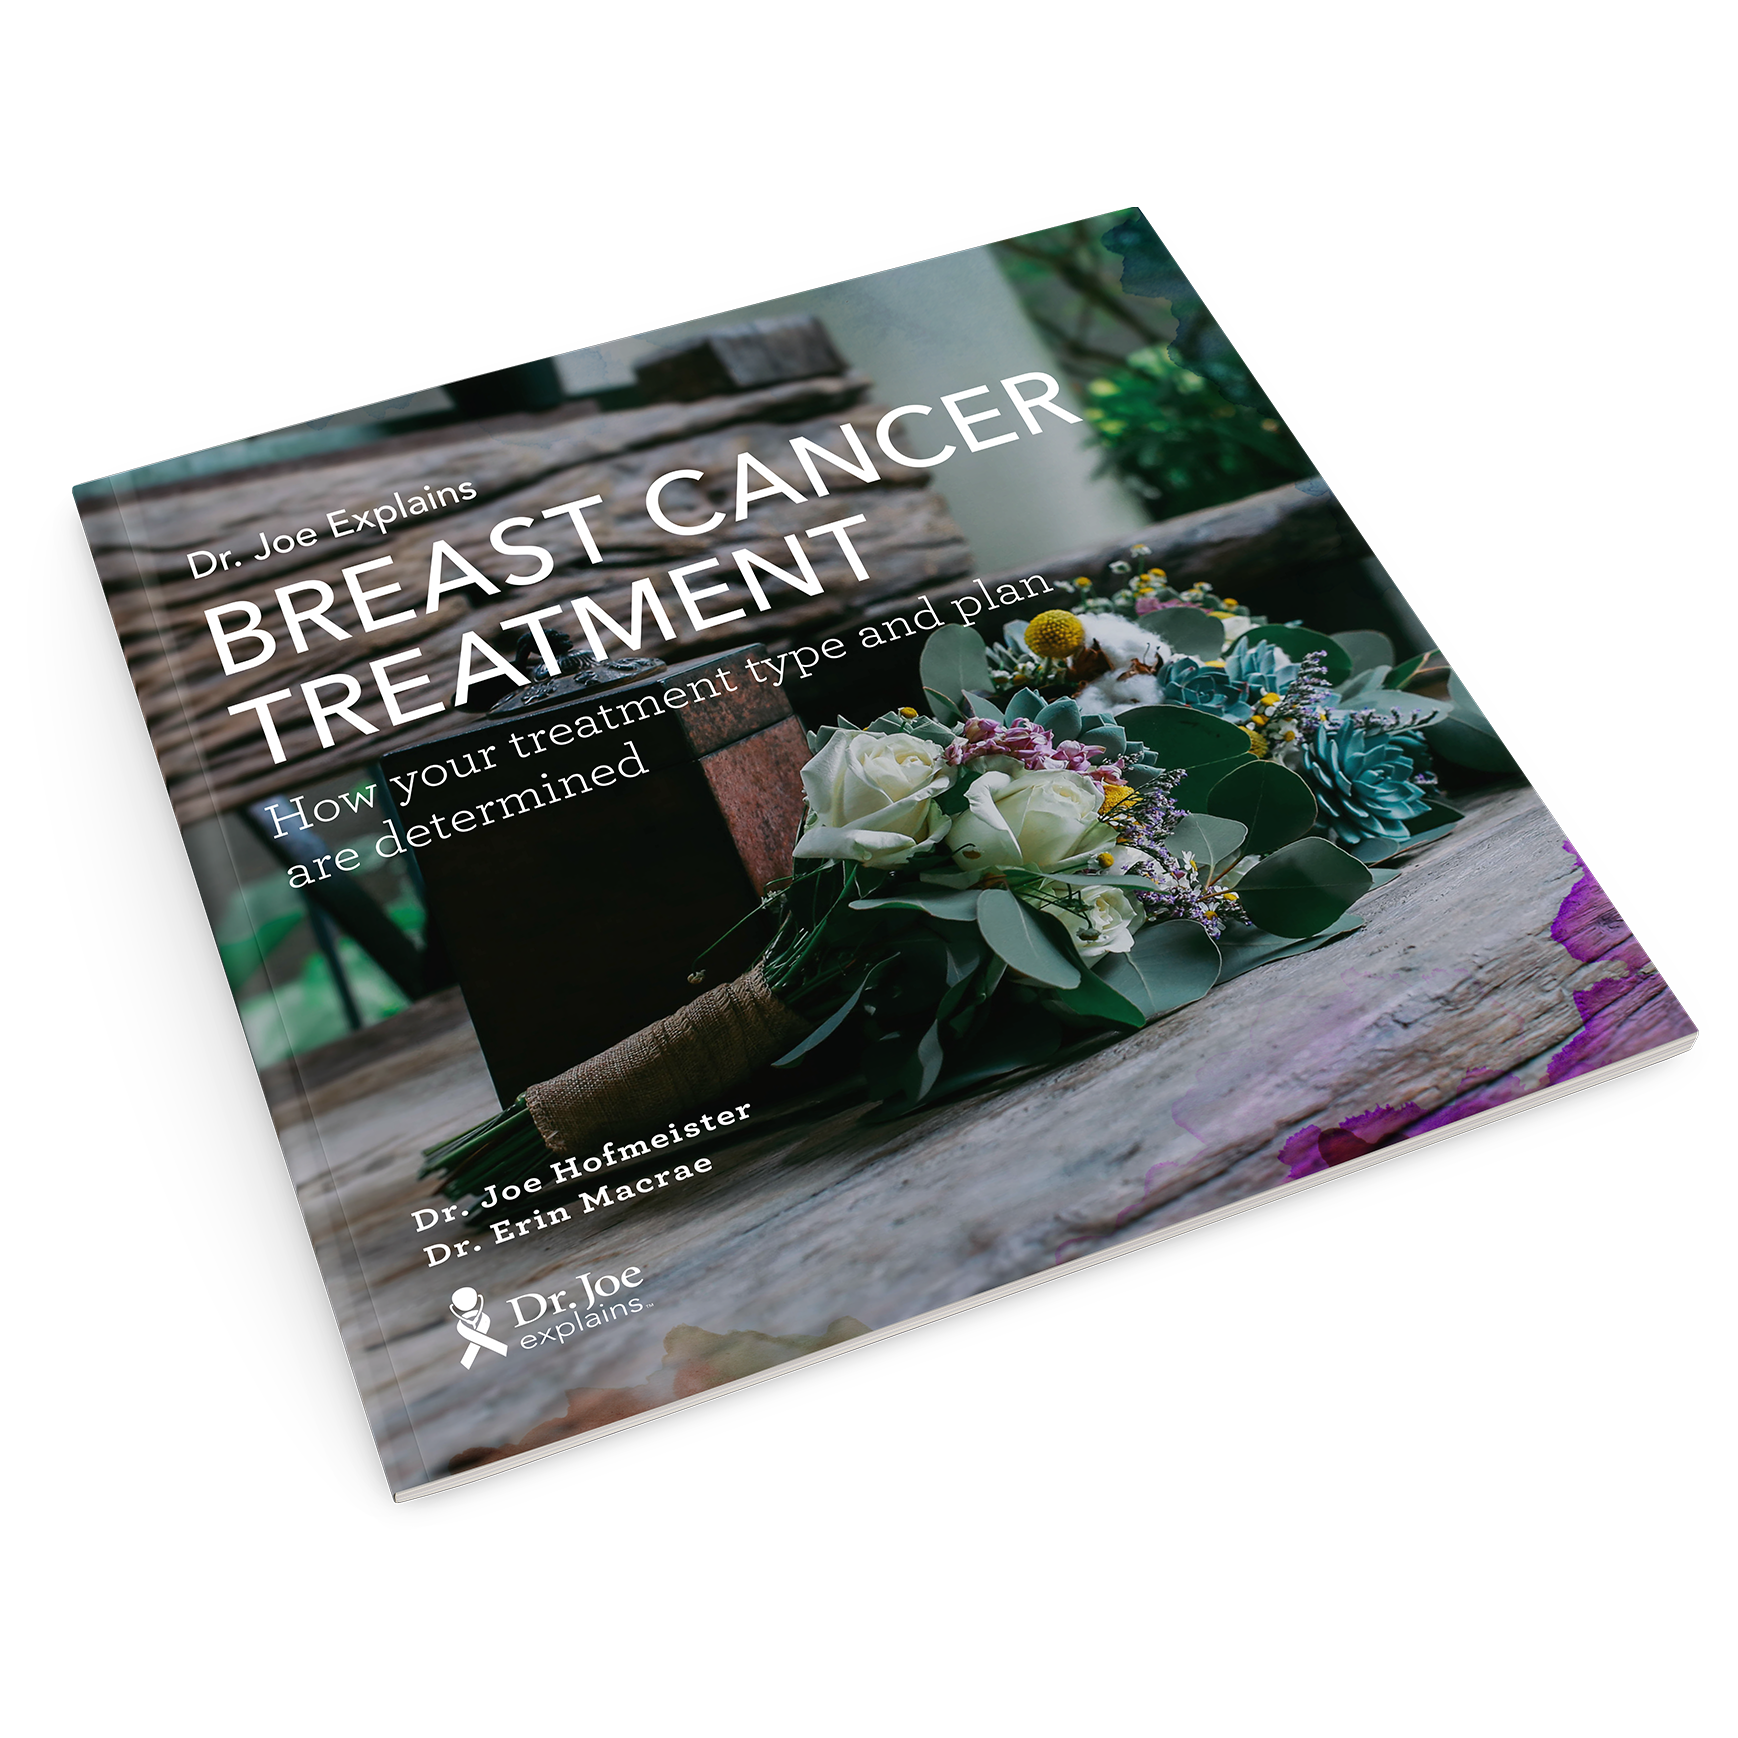 breast cancer treatment booklet patient education resource